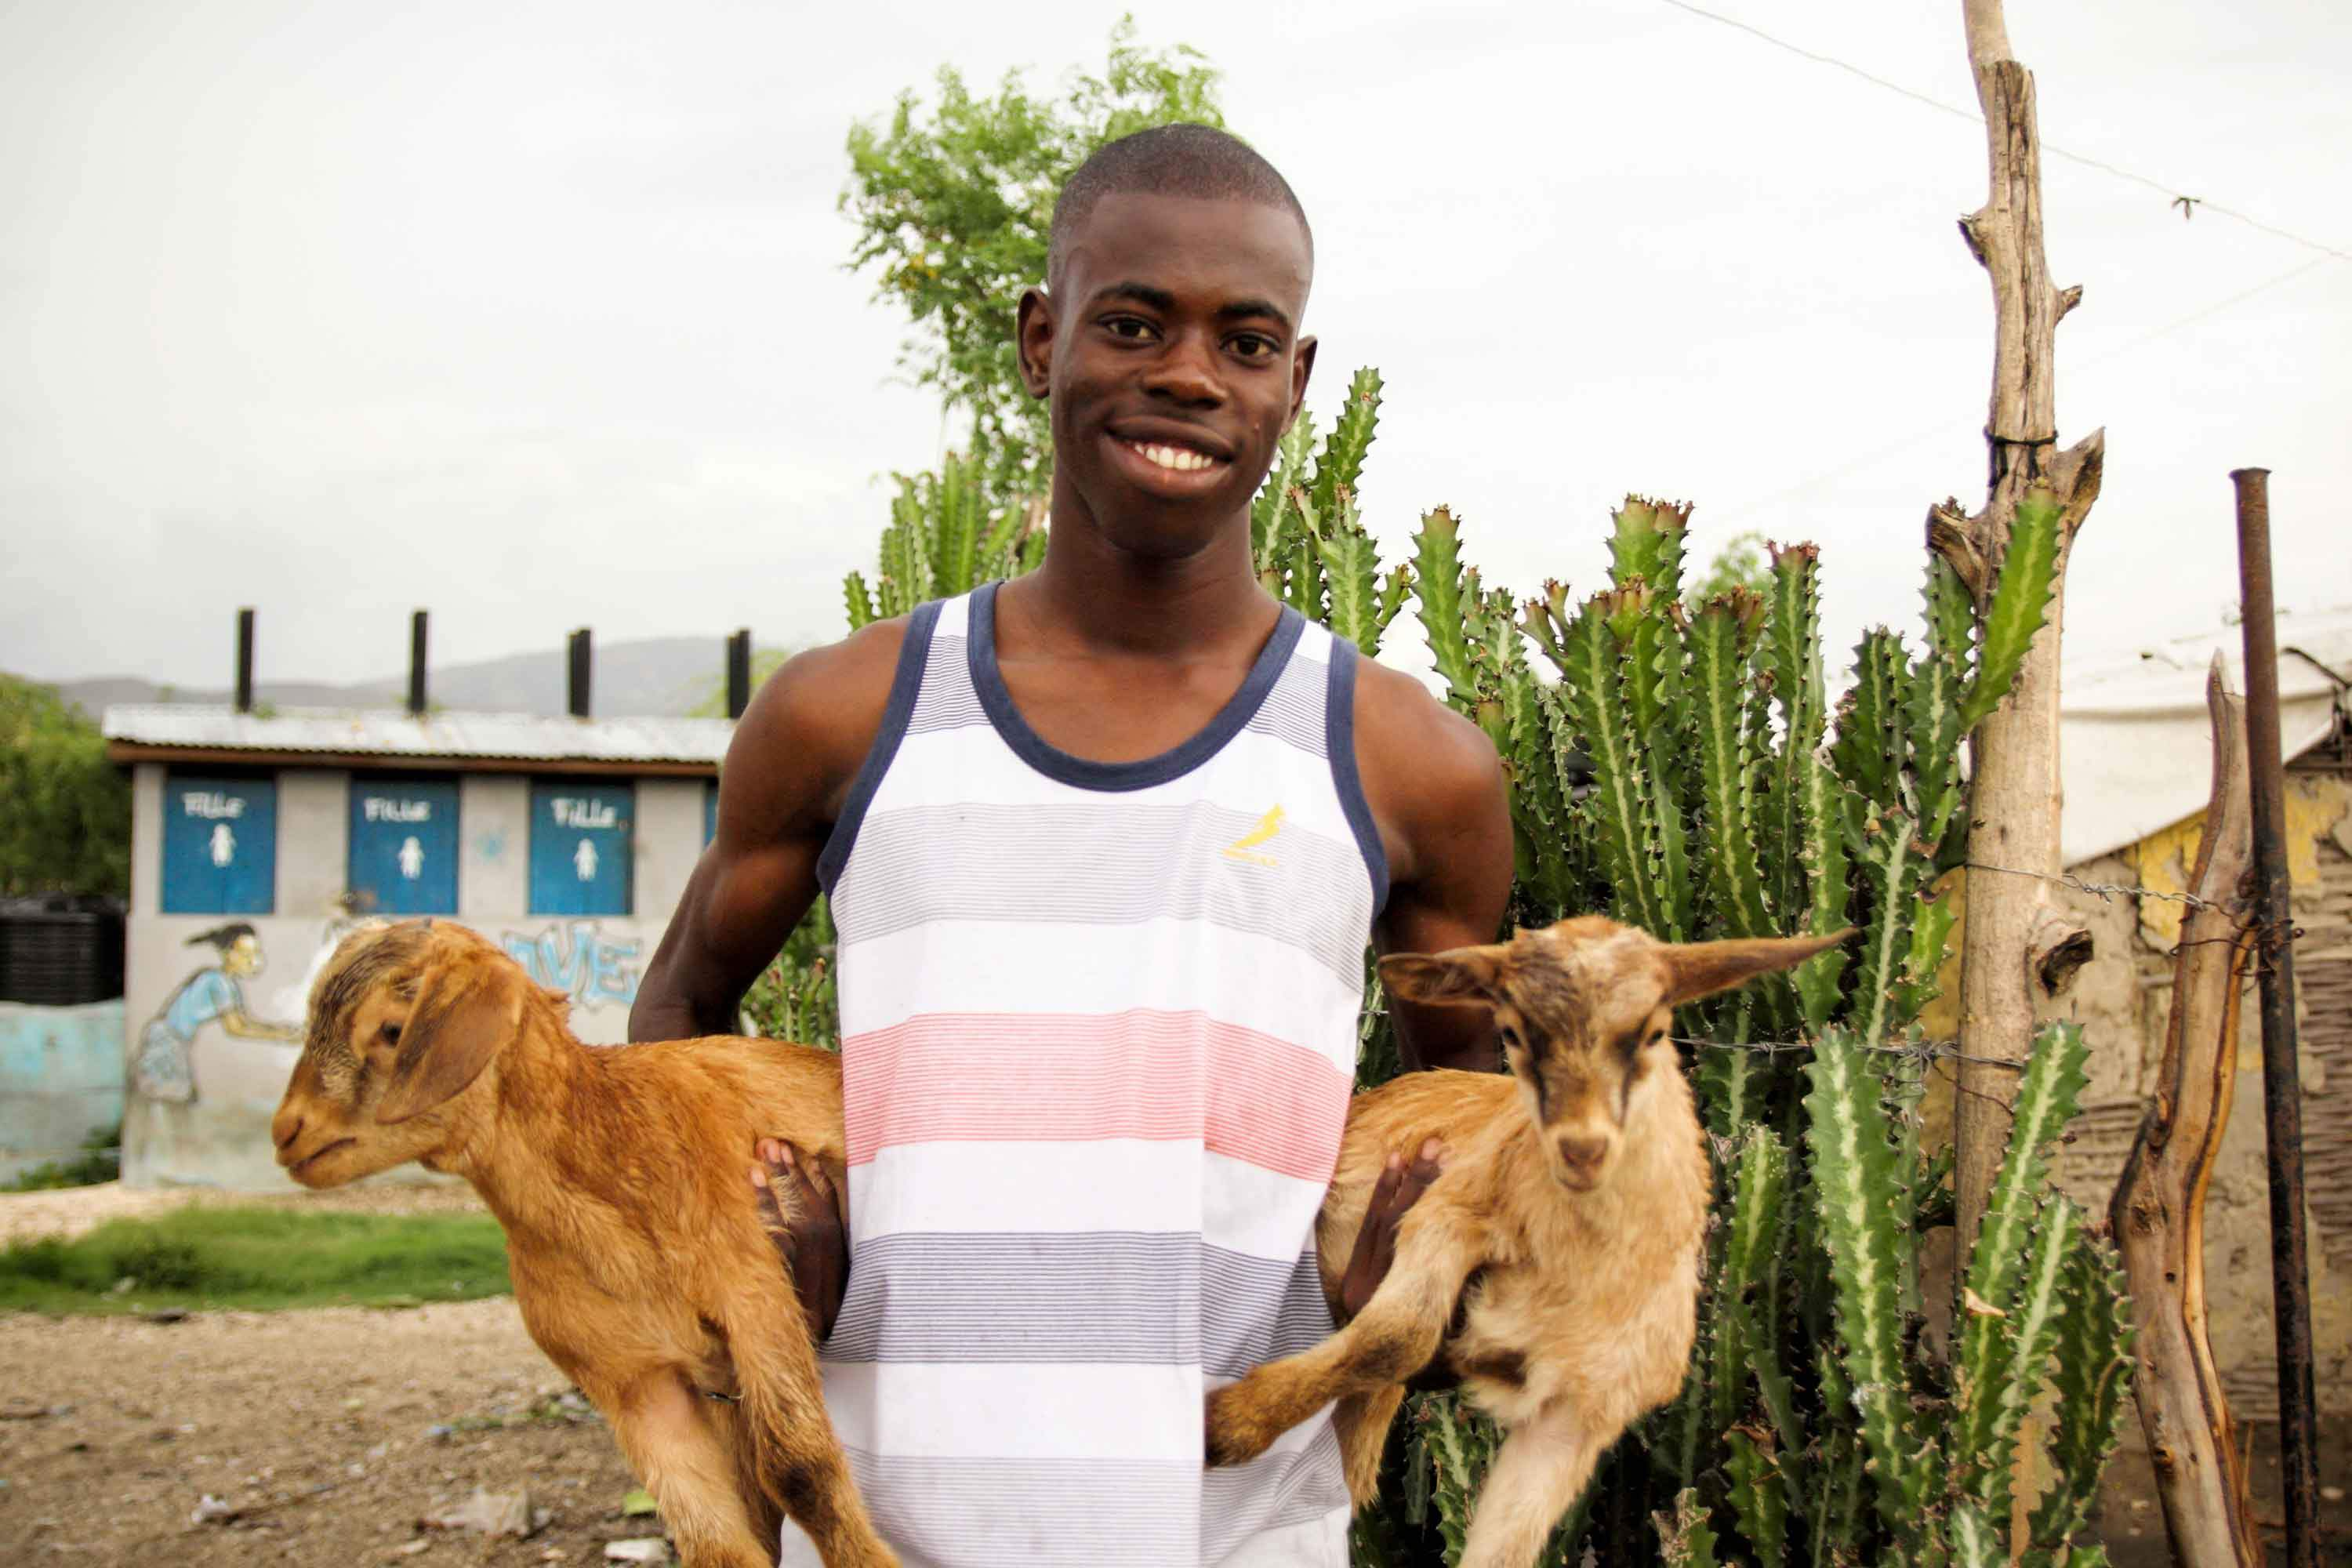 Haitian youth and his goats